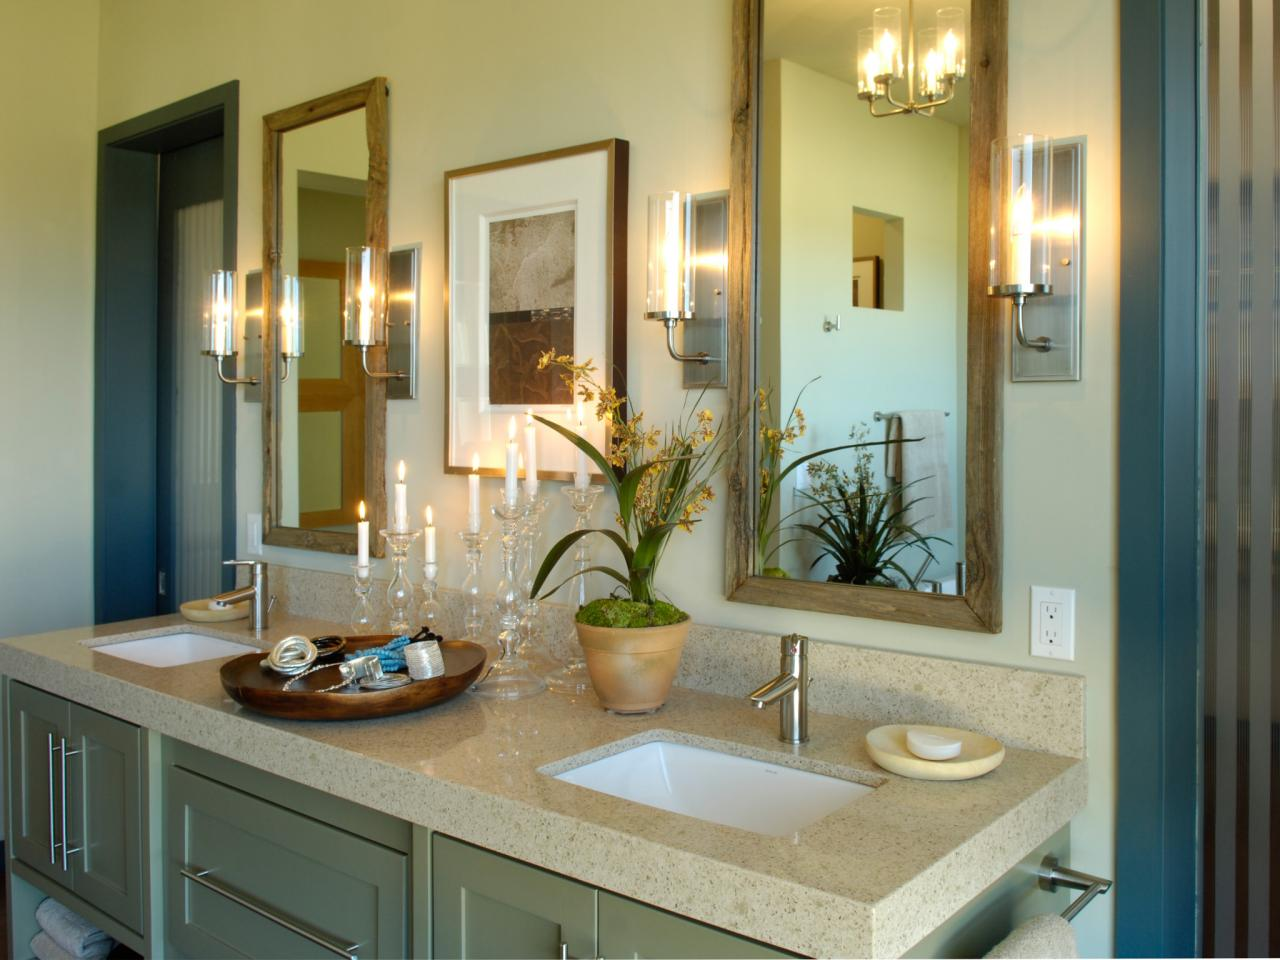 master bathrooms - Hgtv Bathrooms Design Ideas